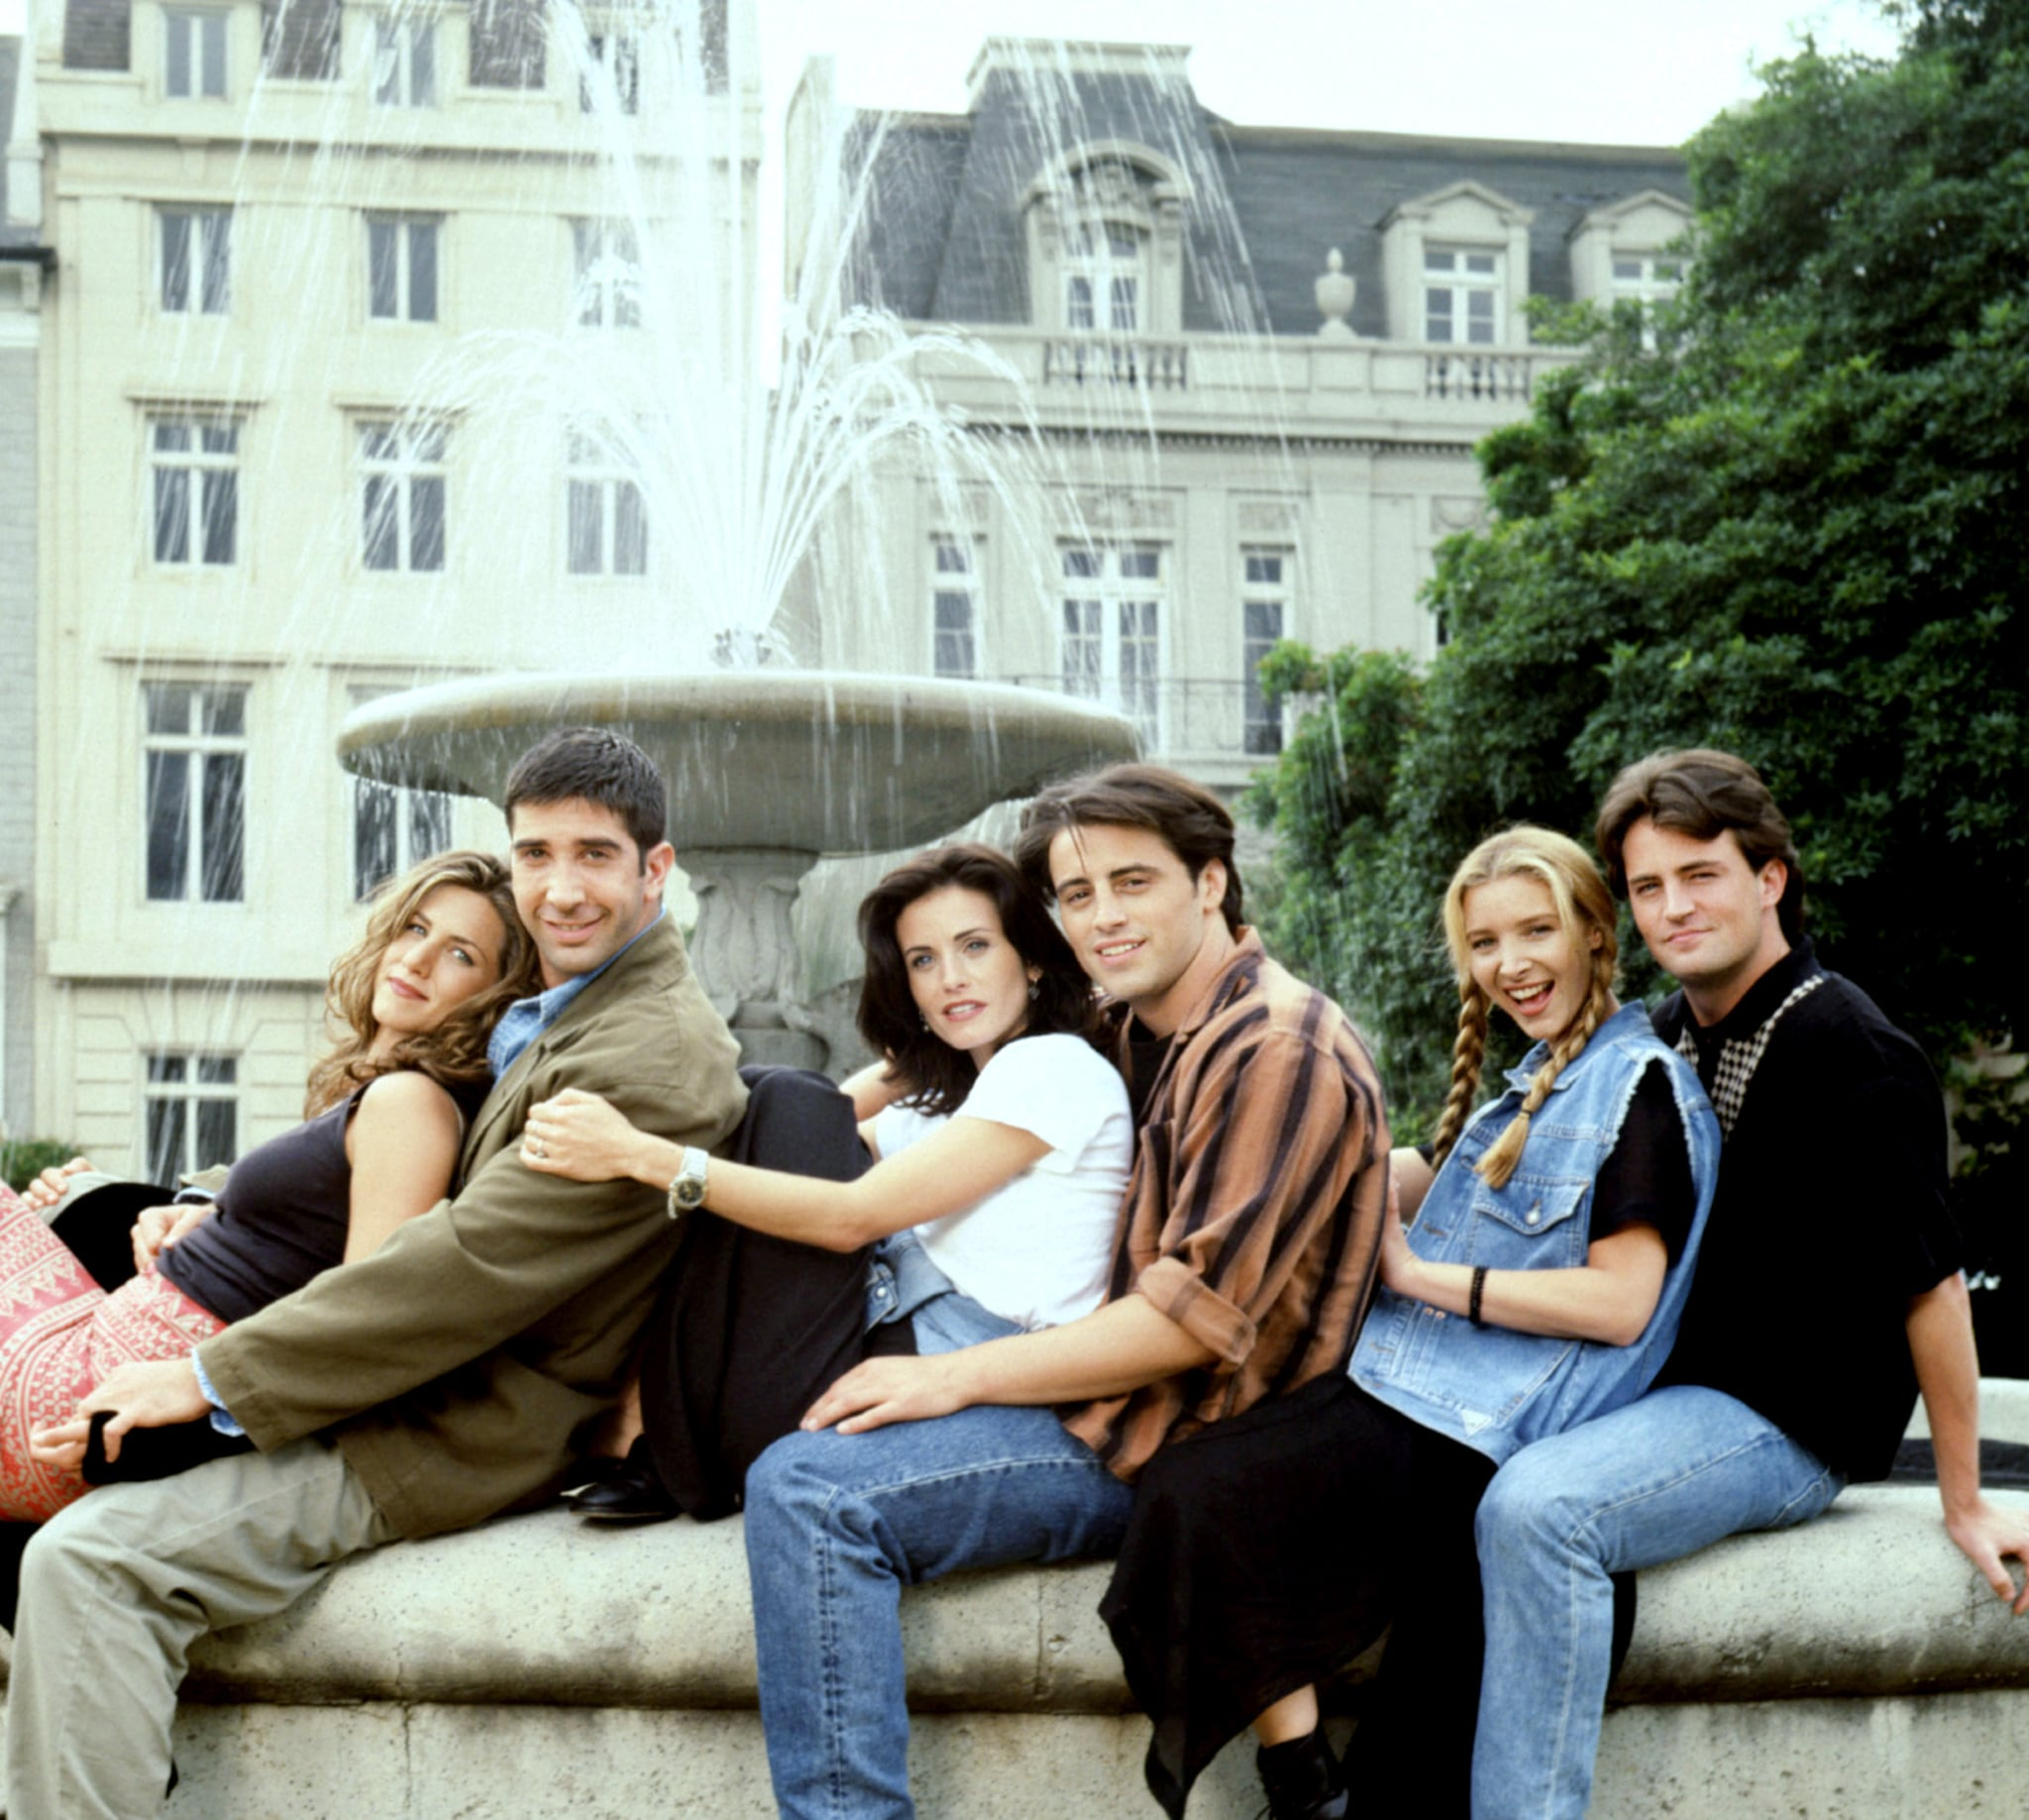 FRIENDS, Jennifer Aniston, David Schwimmer, Courteney Cox Arquette, Matt LeBlanc, Lisa Kudrow, Matthew Perry, (Season 1), 1994-2004,  Warner Bros. / Courtesy: Everett Collection